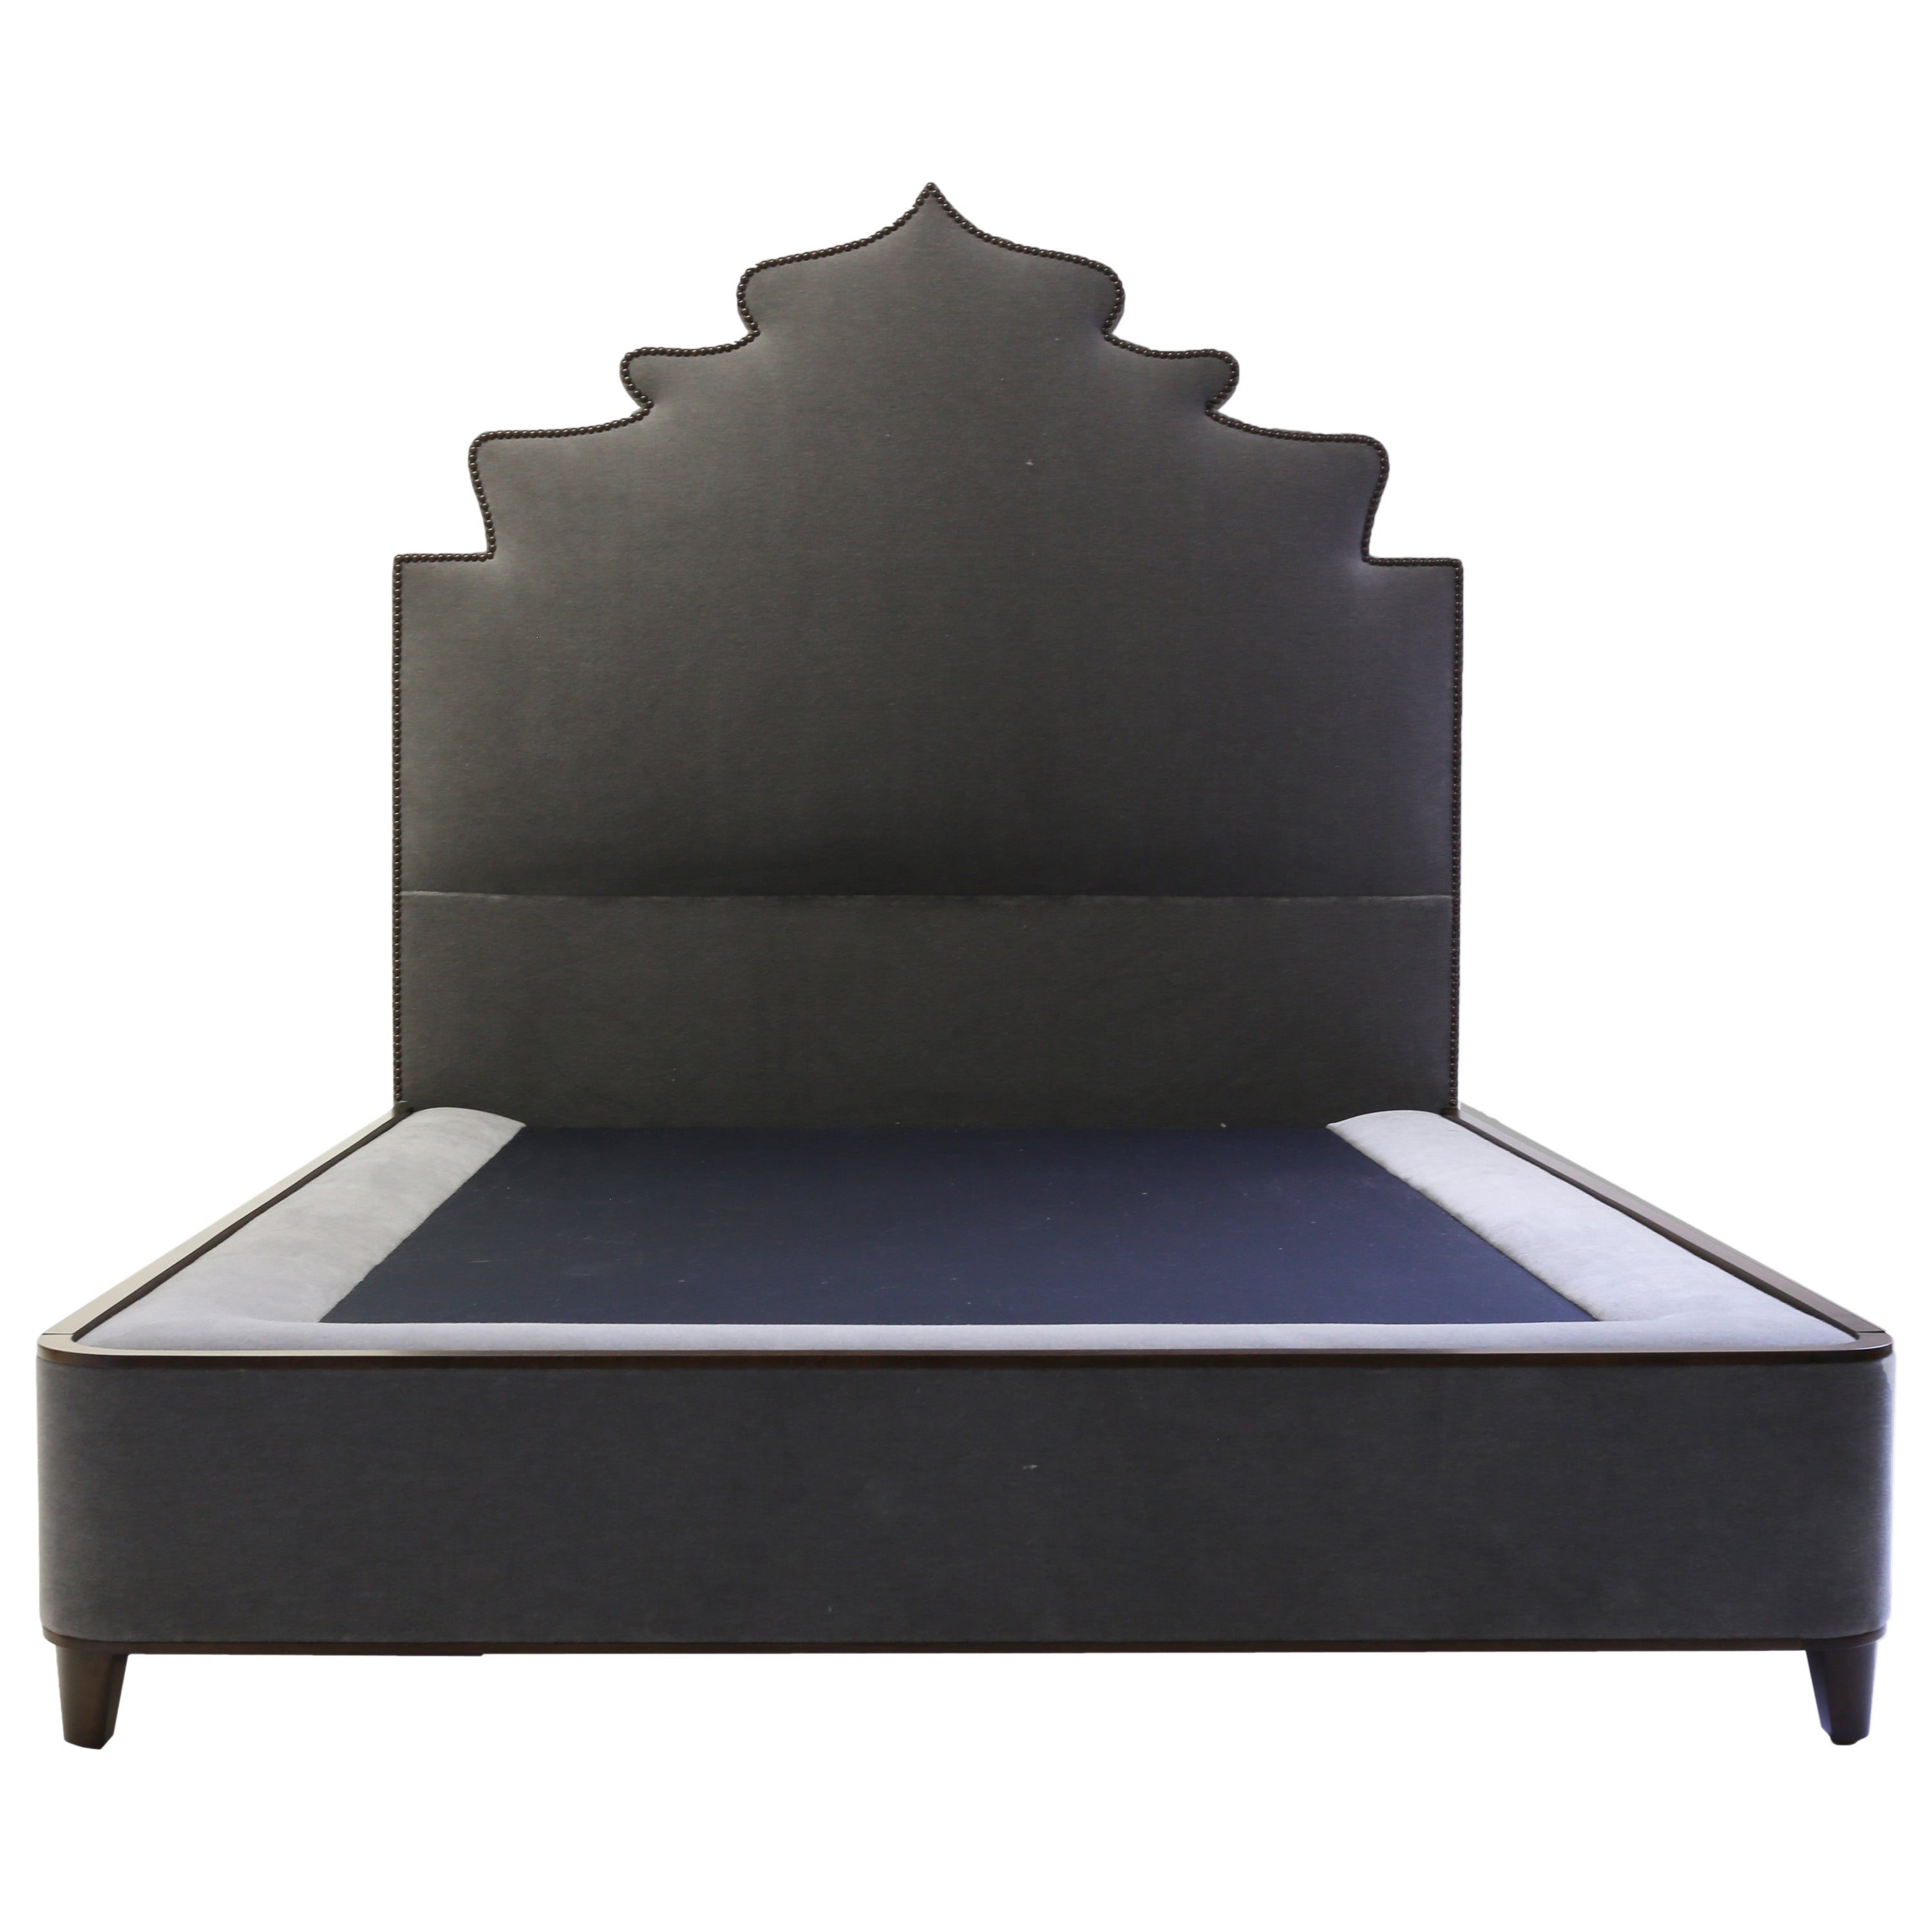 Queensize Bed with Carved Headboard with Nailheads and Covered Base on Wood Legs